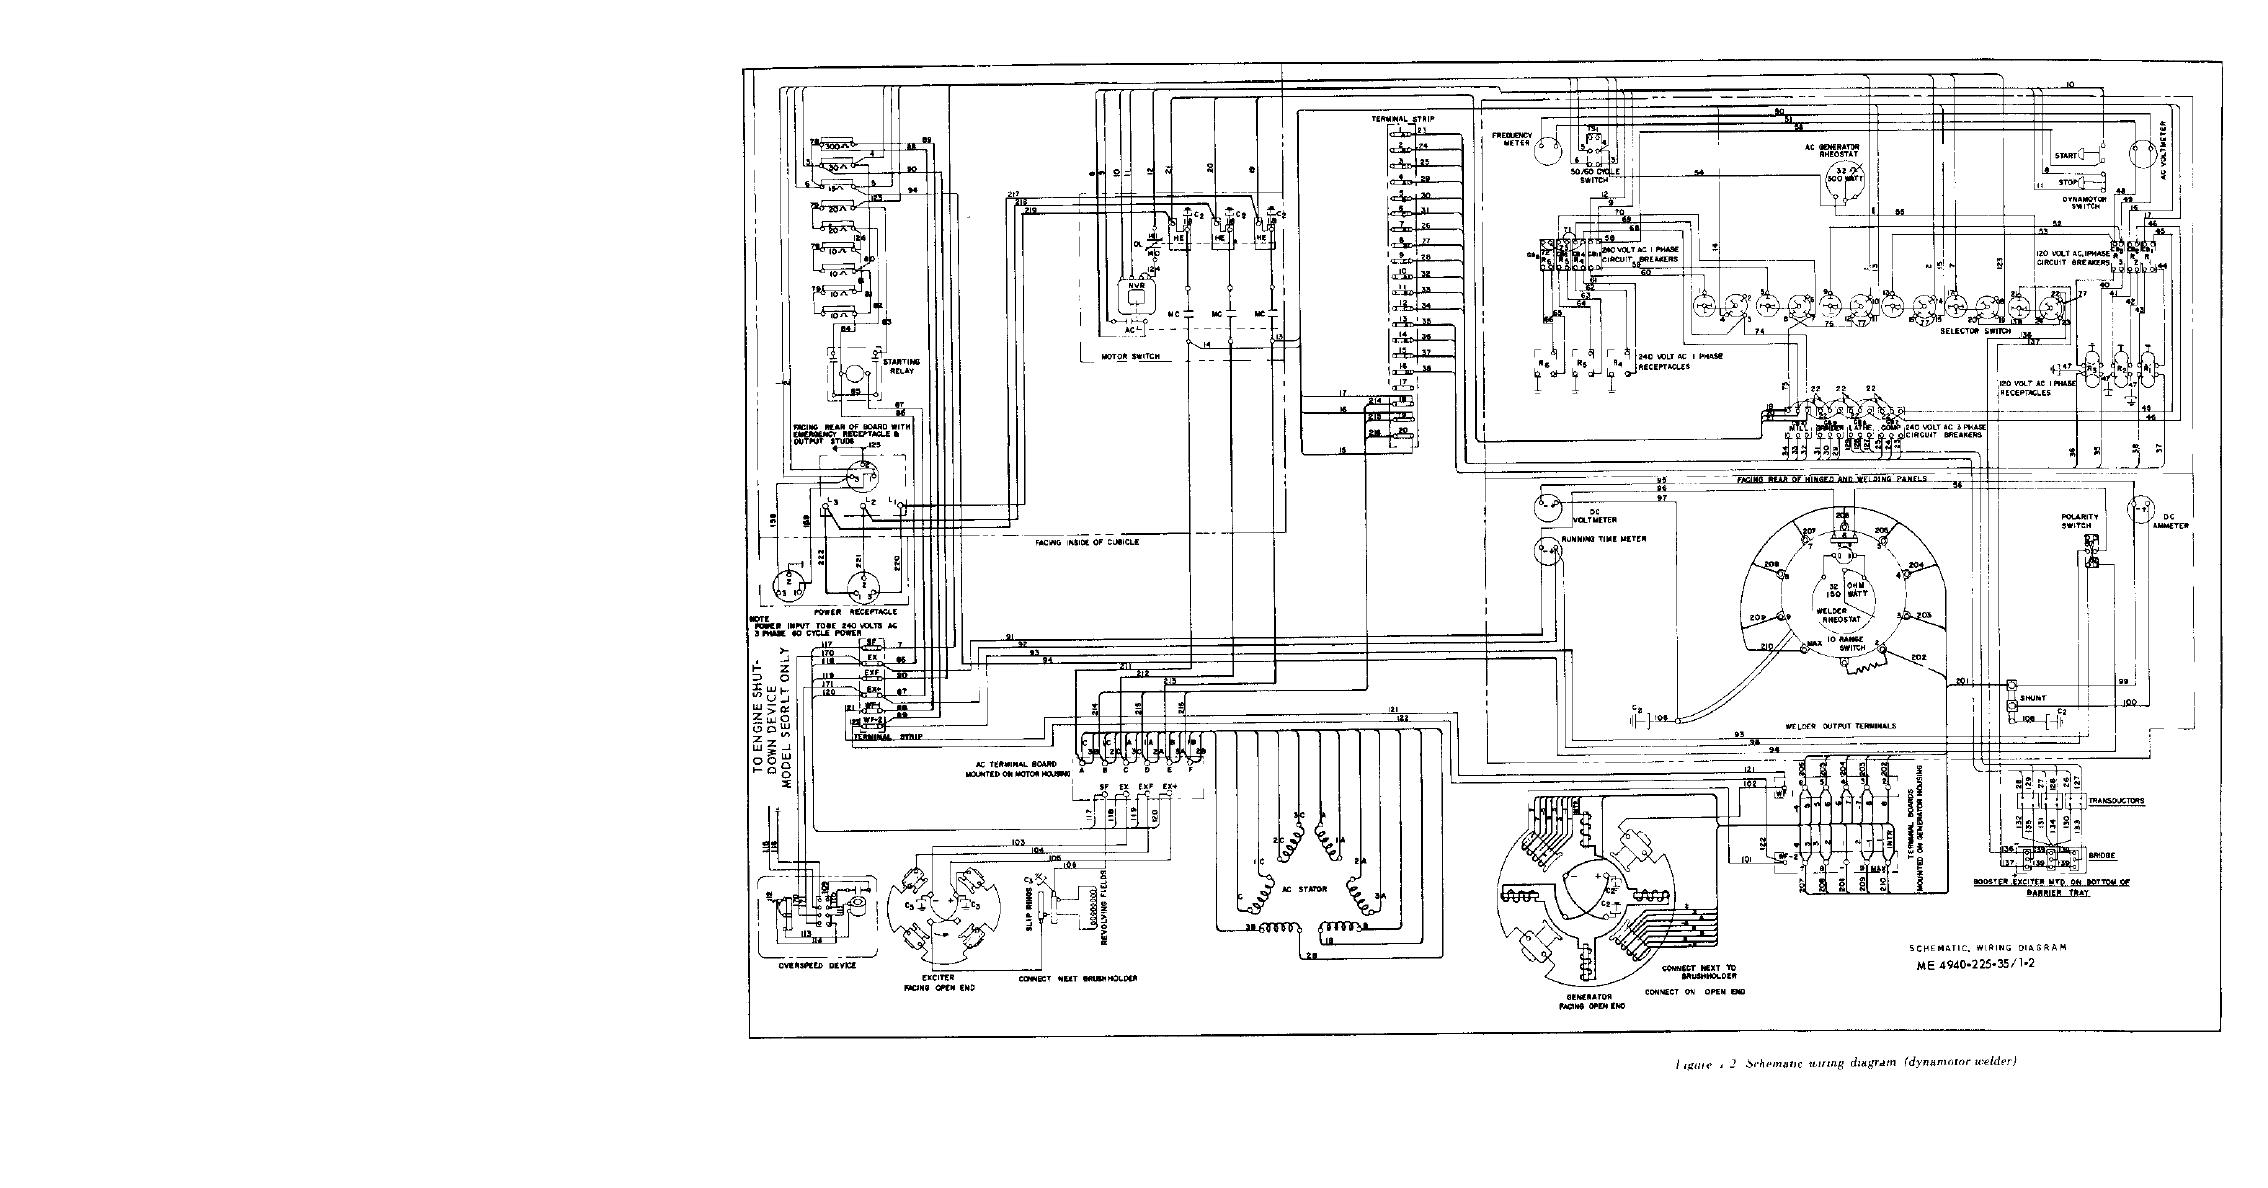 figure 12 schematic wiring diagram dynamotor welder